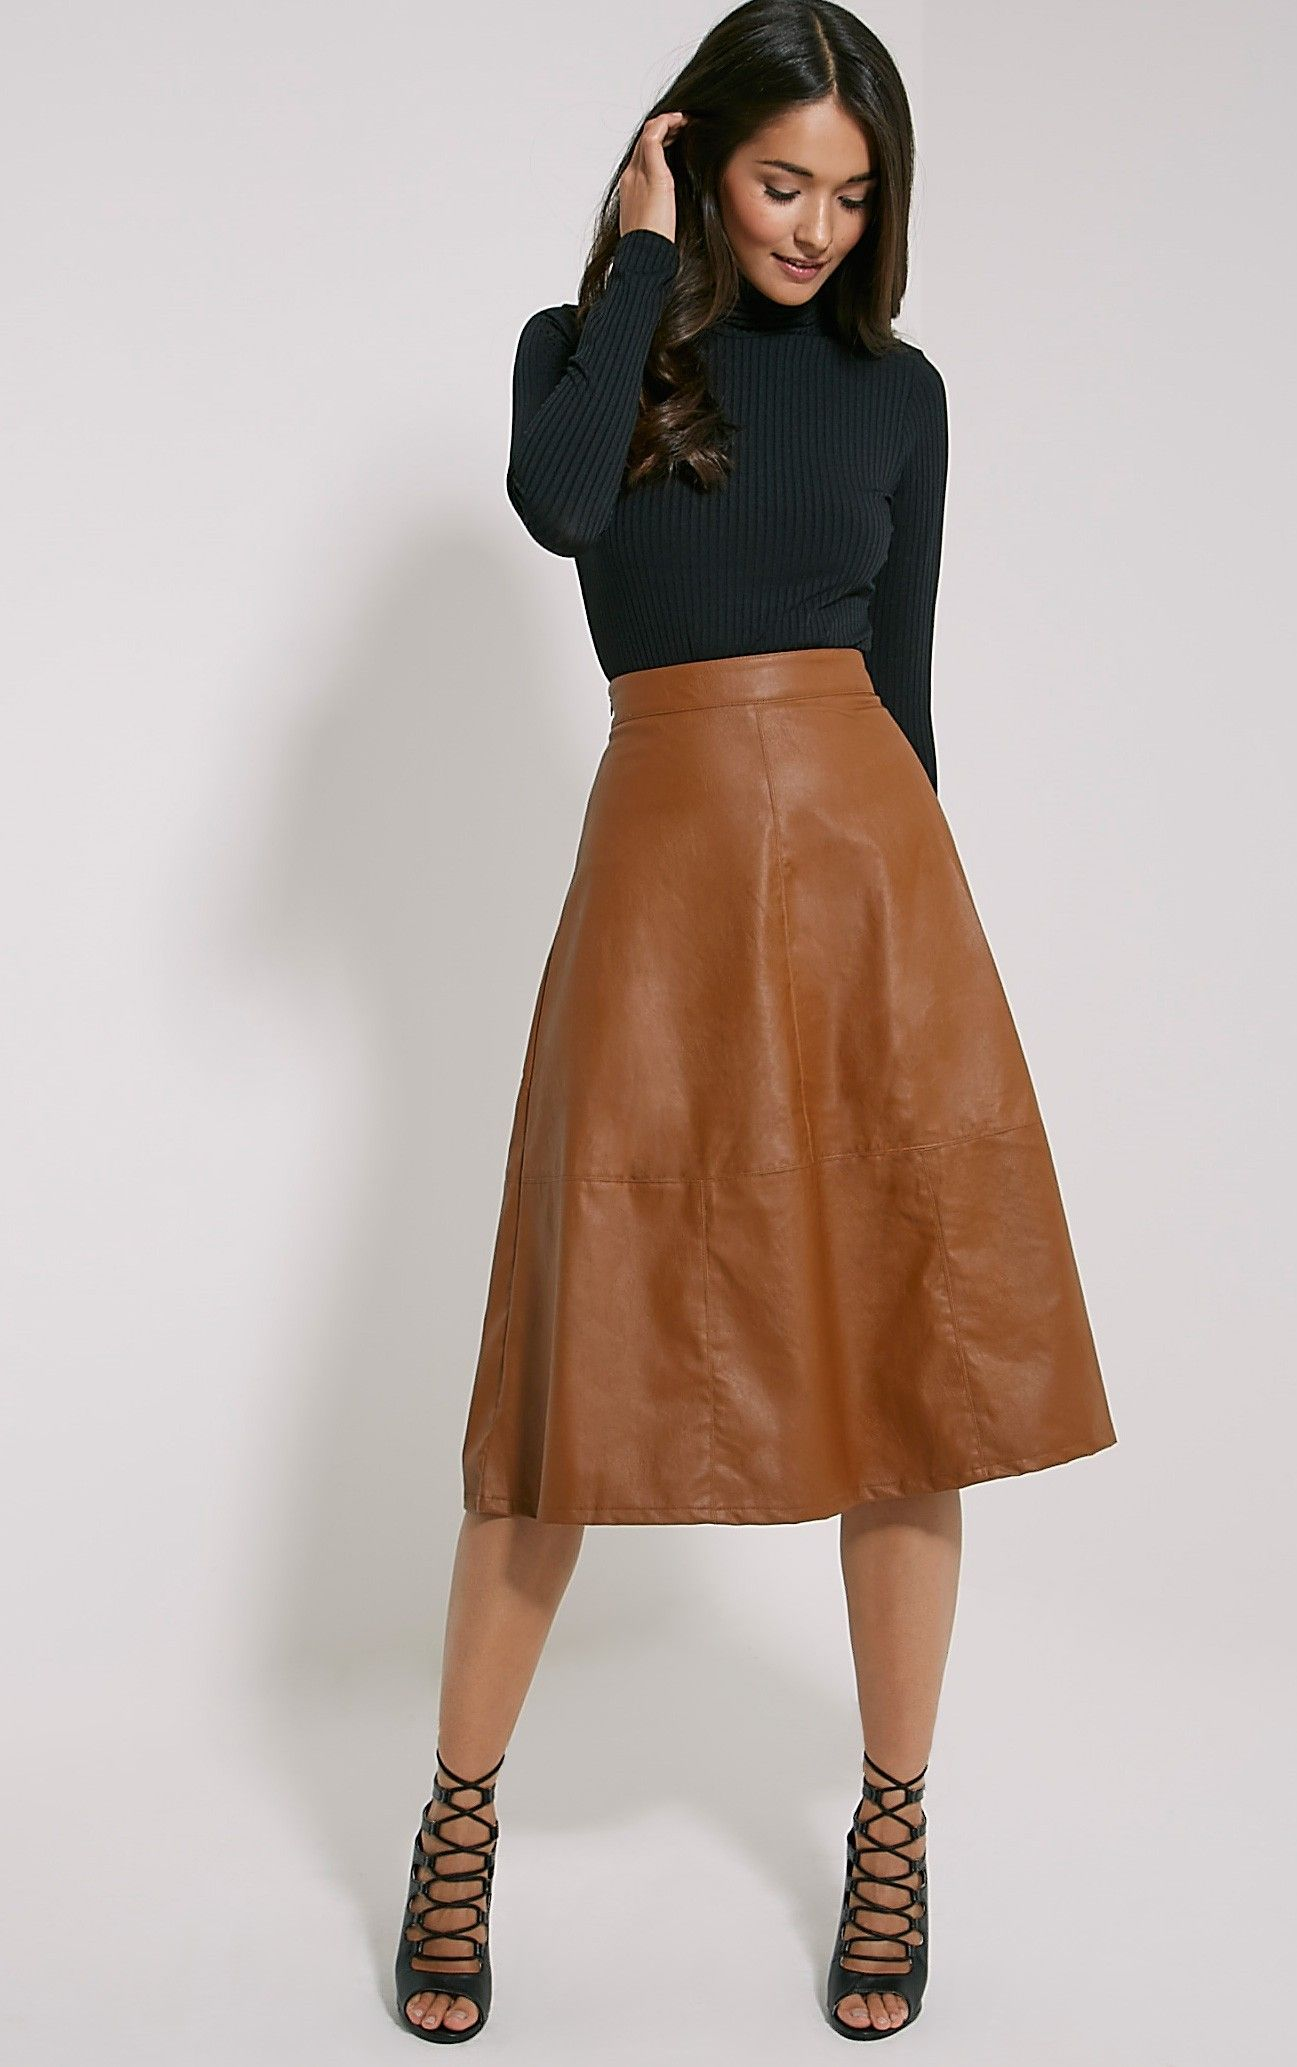 8f5d0f38e Trying to find an affordable leather or faux leather midi skirt. If only  this one was more convincing!